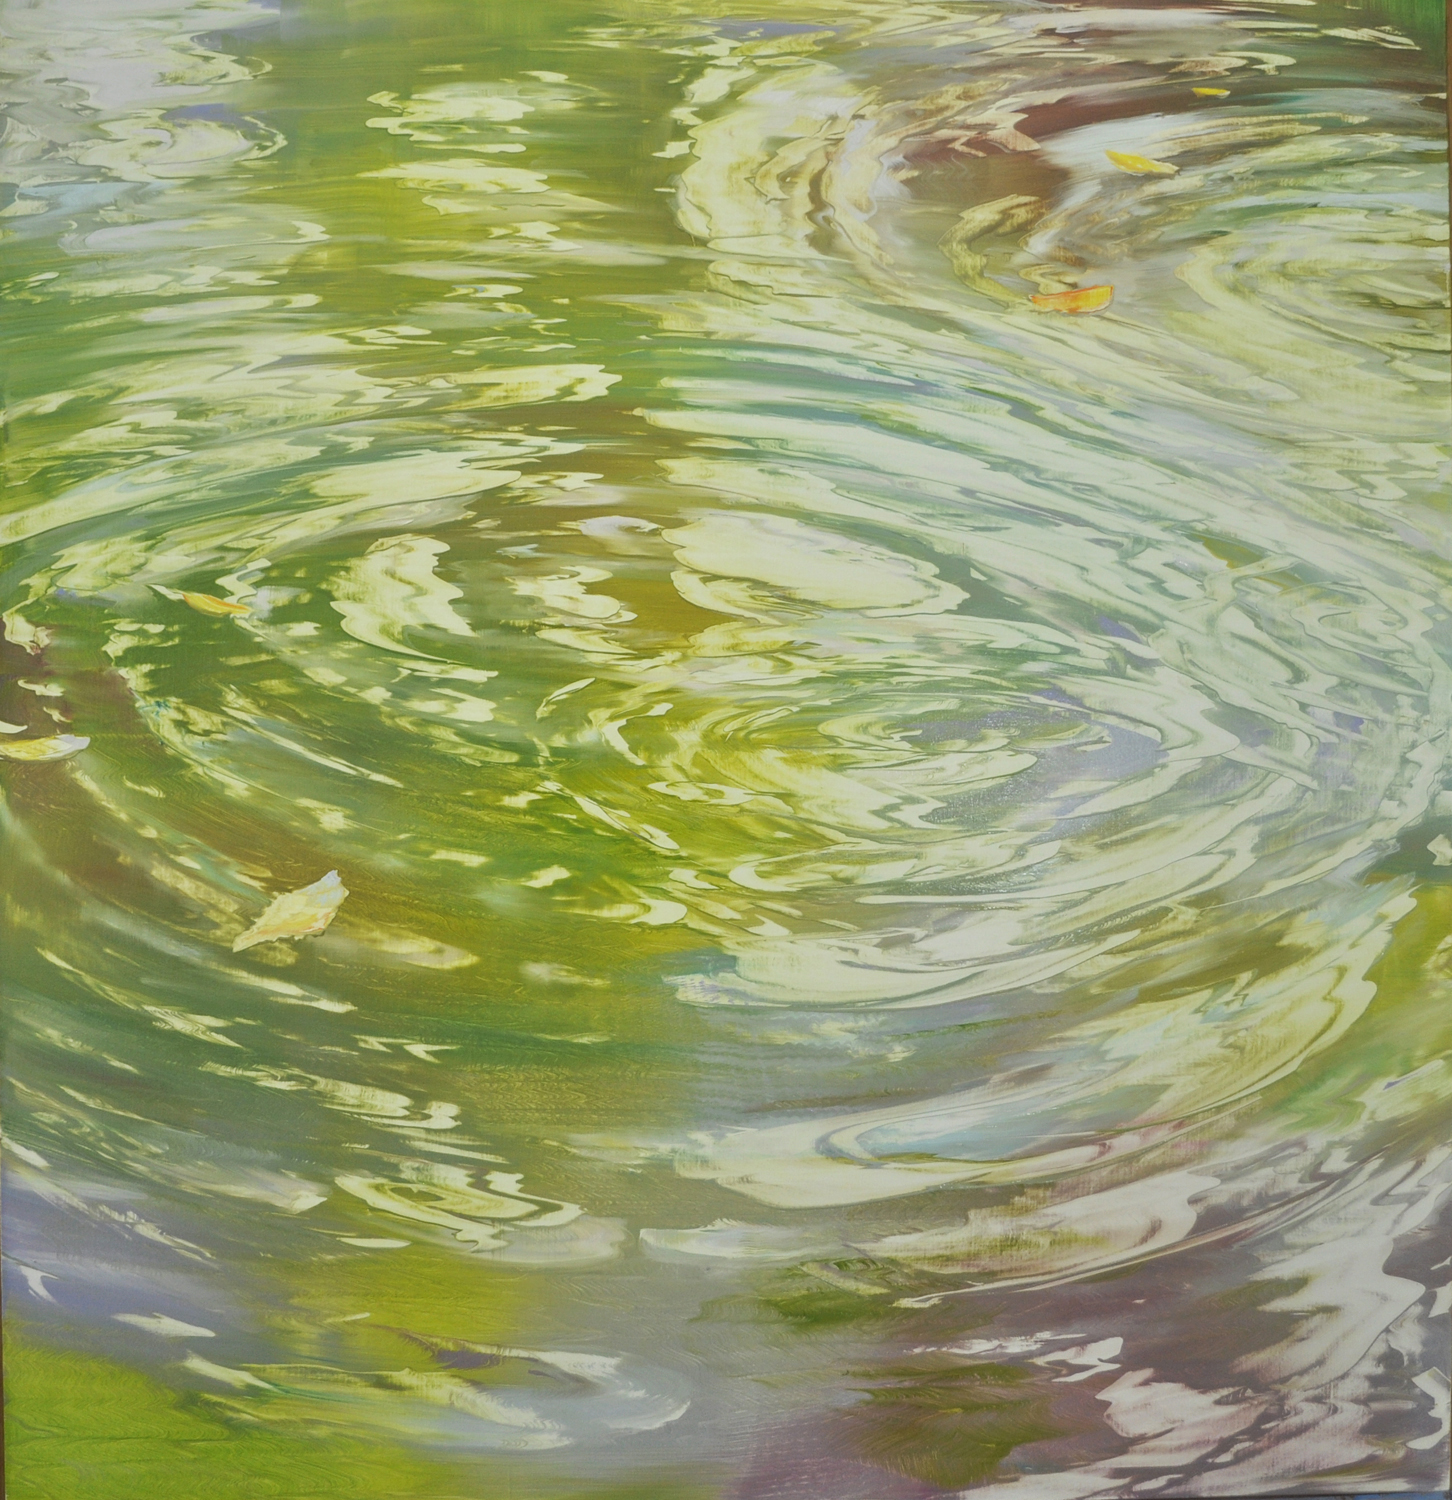 """Harmonic Resonance"", oil on linen, 48x46"